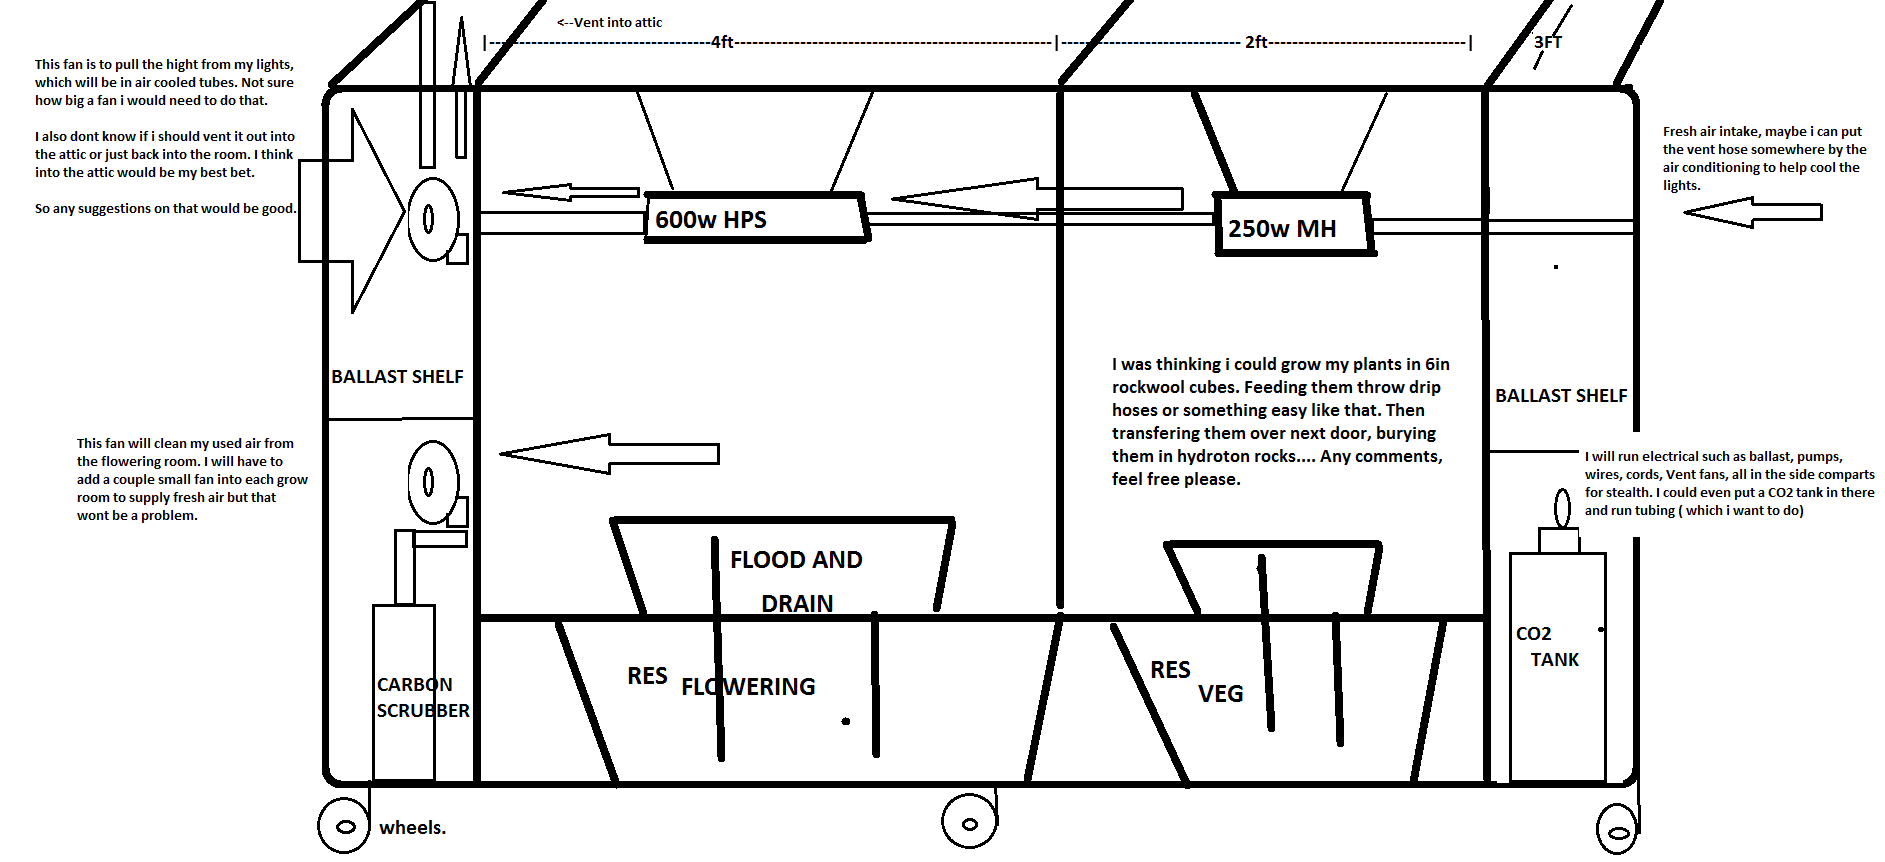 grow room ventilation diagram 1997 volkswagen jetta wiring when doing scrog how do yall transfer from your veg